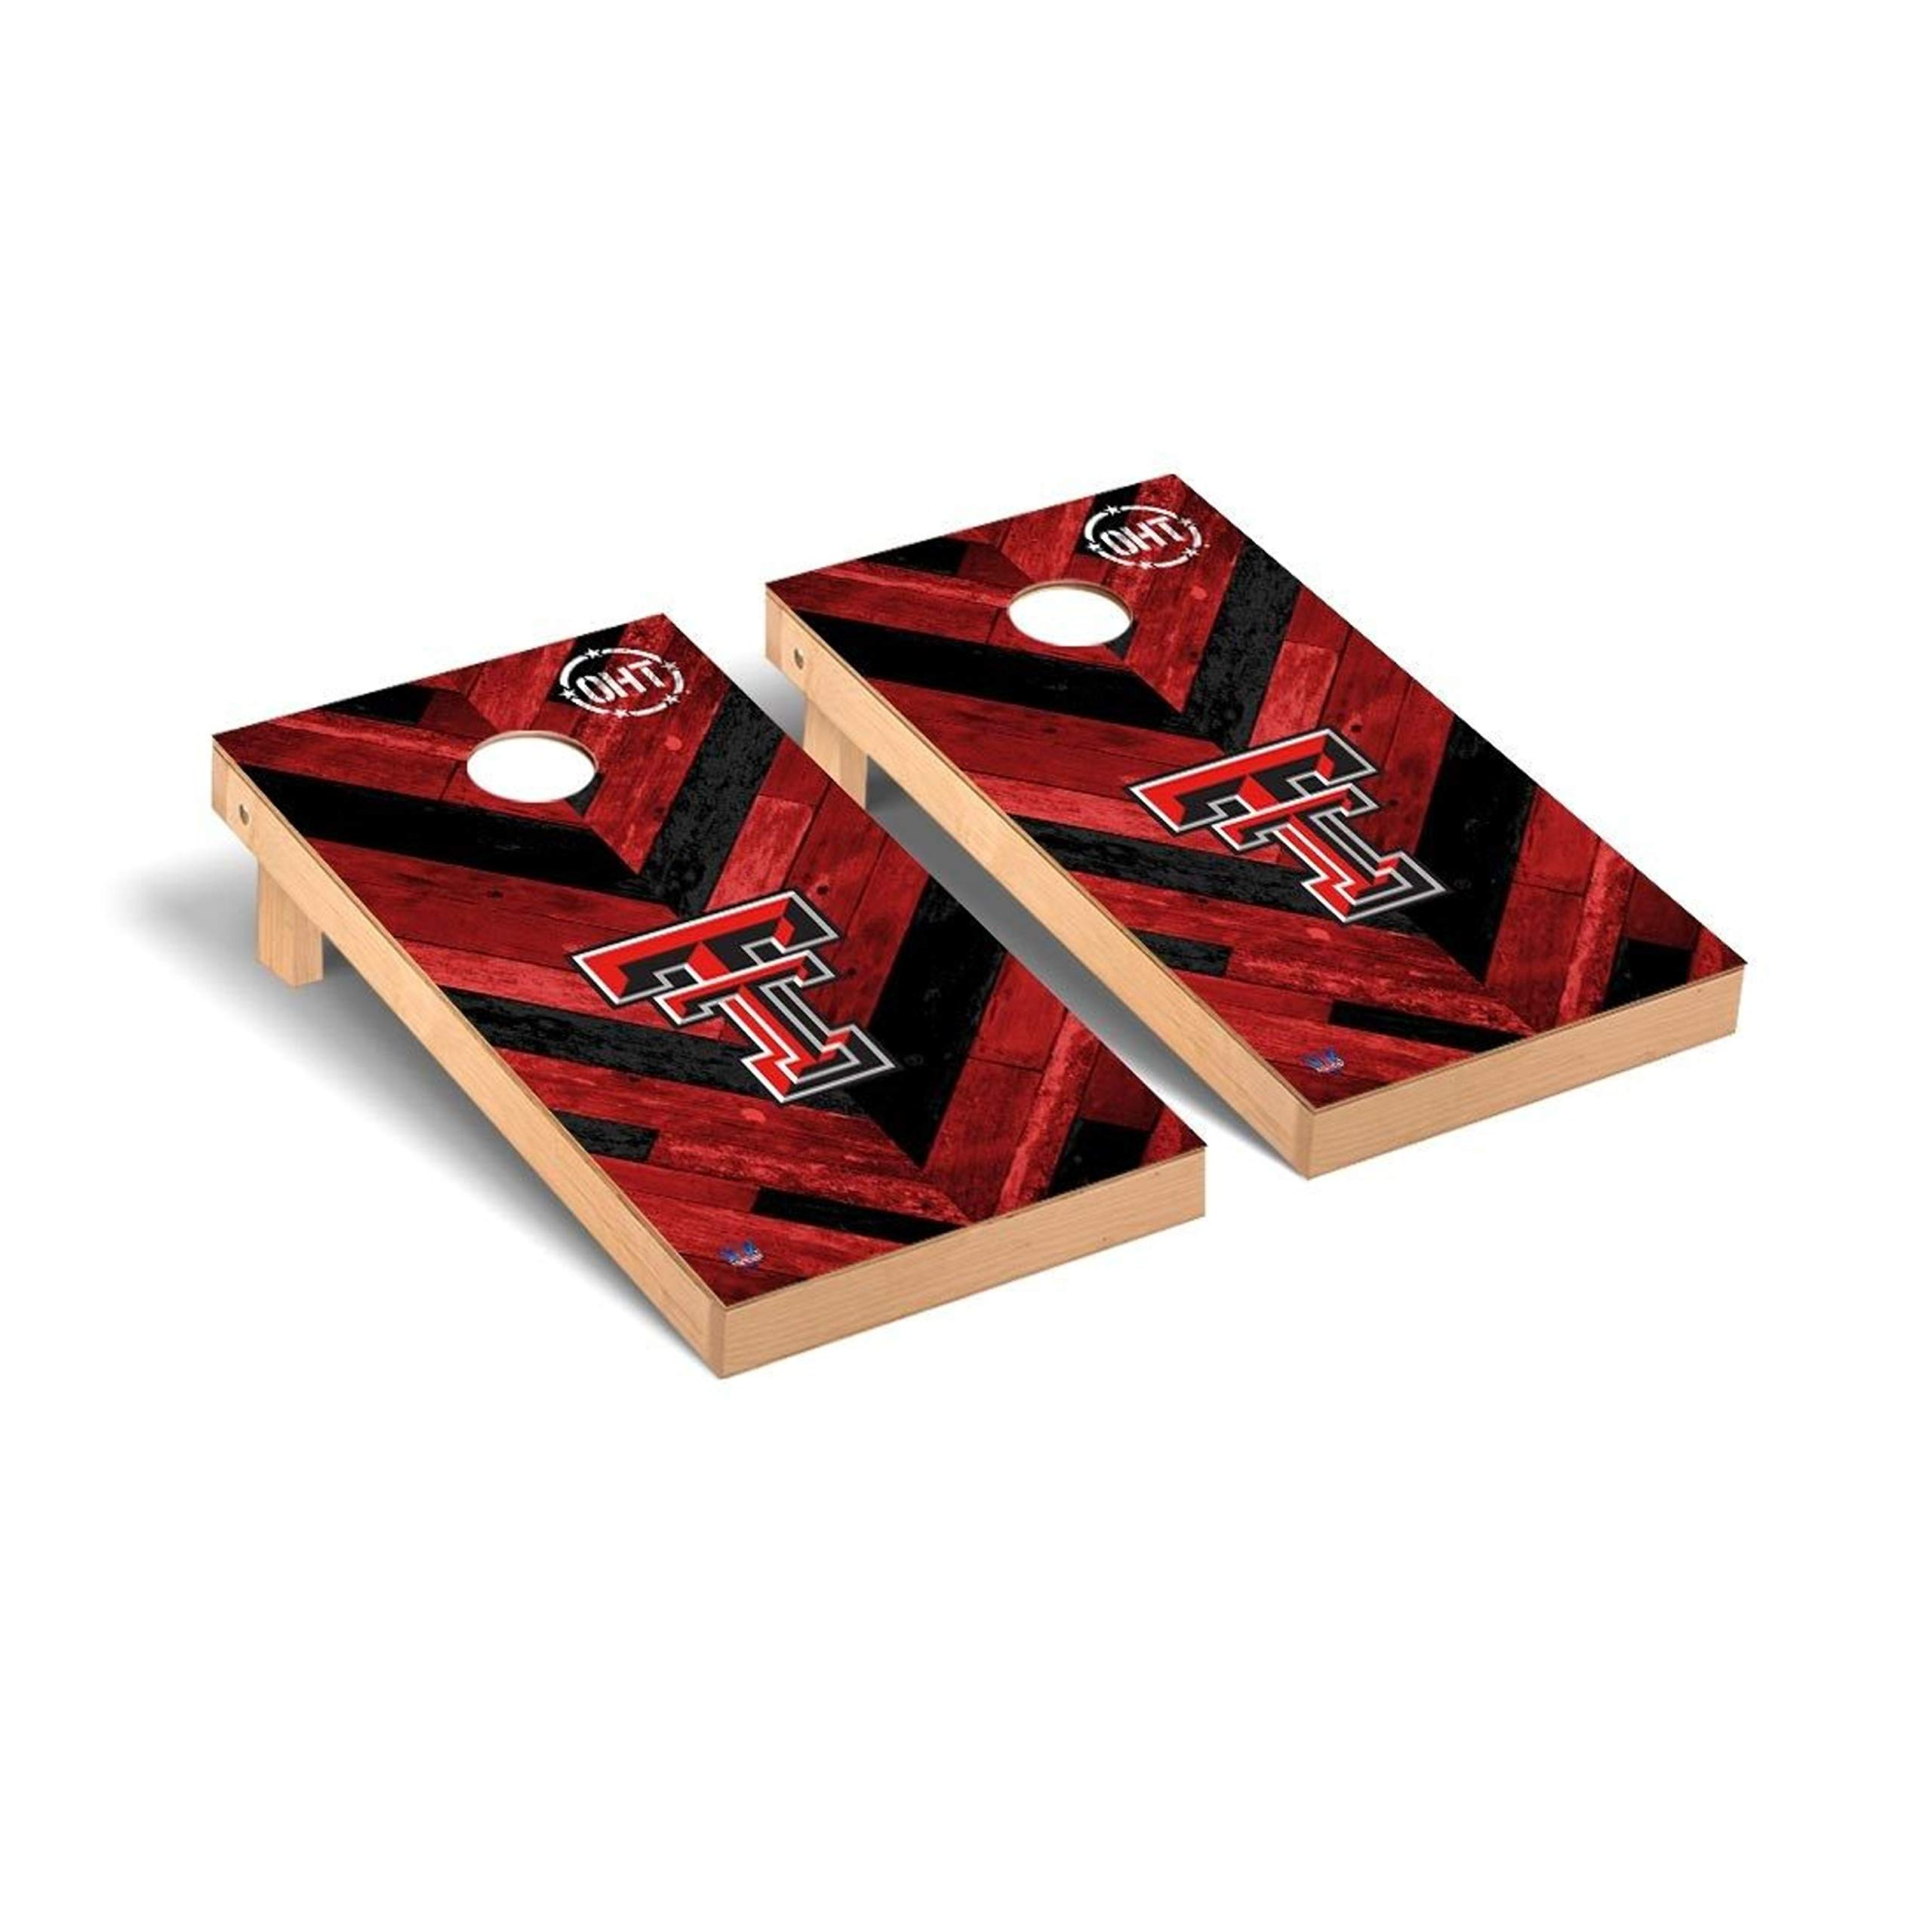 Victory Tailgate Texas Tech Red Raiders OHT NCAA - Herringbone Design Cornhole Board Set - 2 Boards, 8 Bags